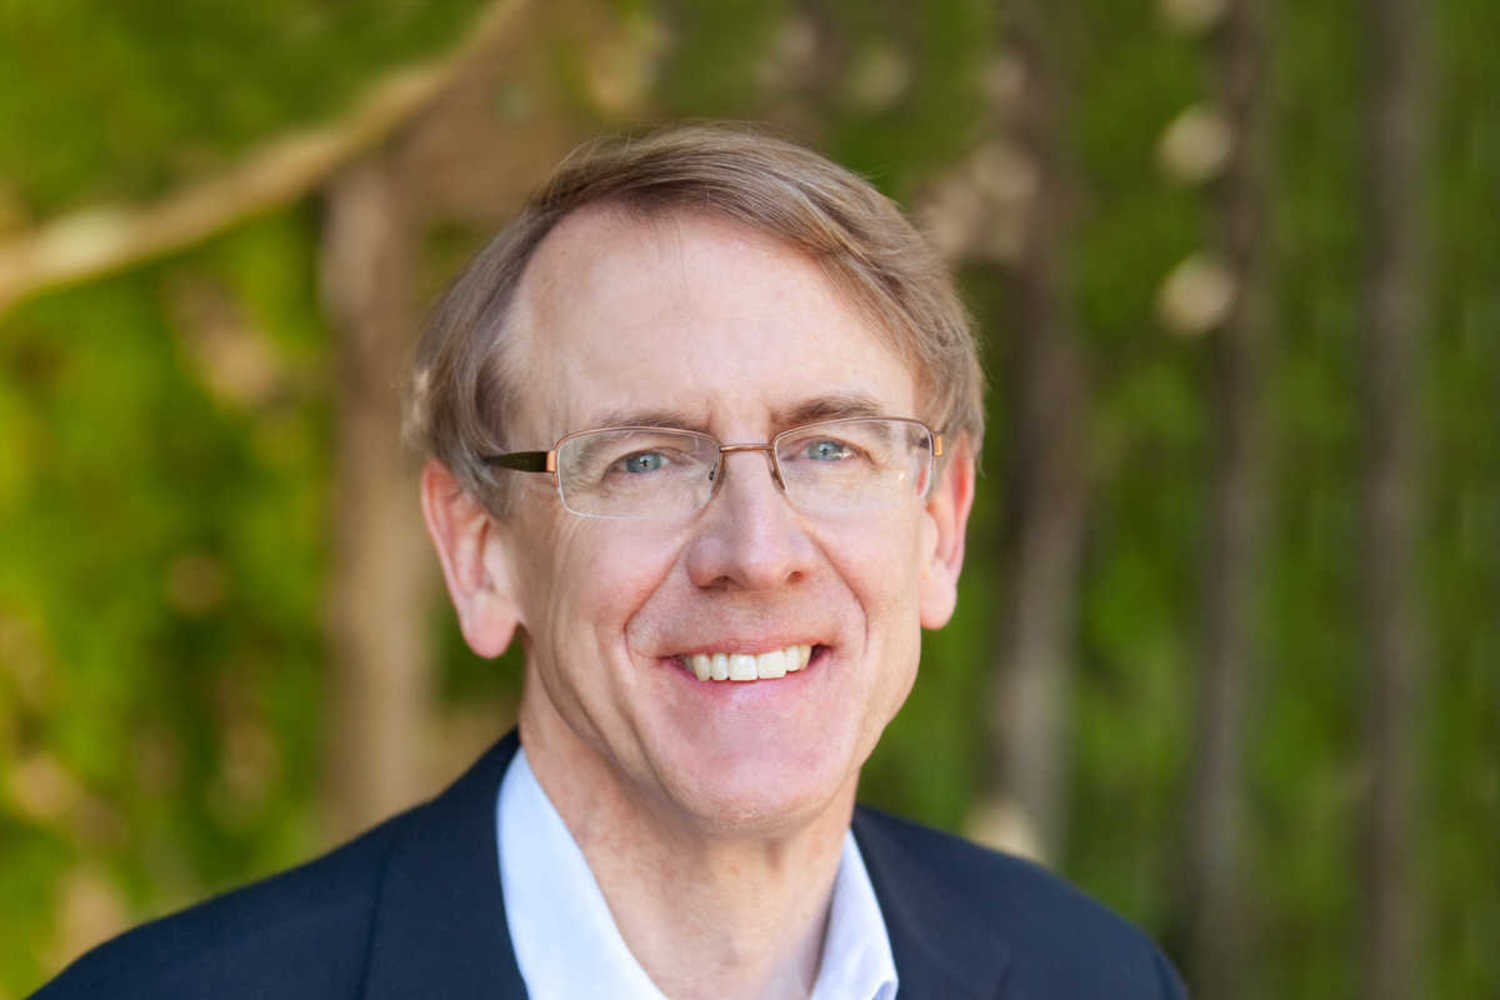 A New Role as KPCB Chair